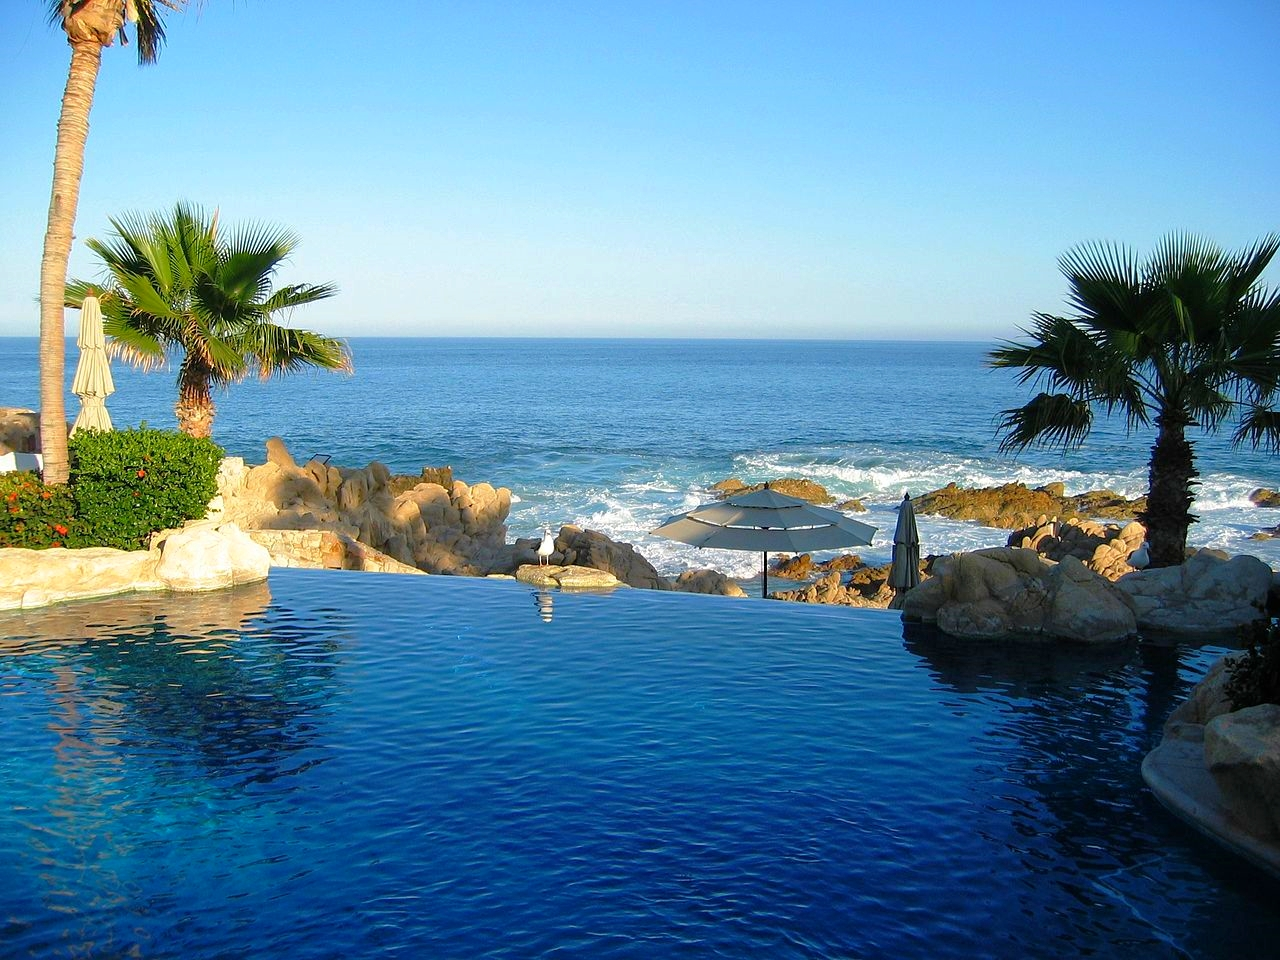 1280px-Infinity_Pool_One_and_Only_resort_Cabo_San_Lucas.jpg